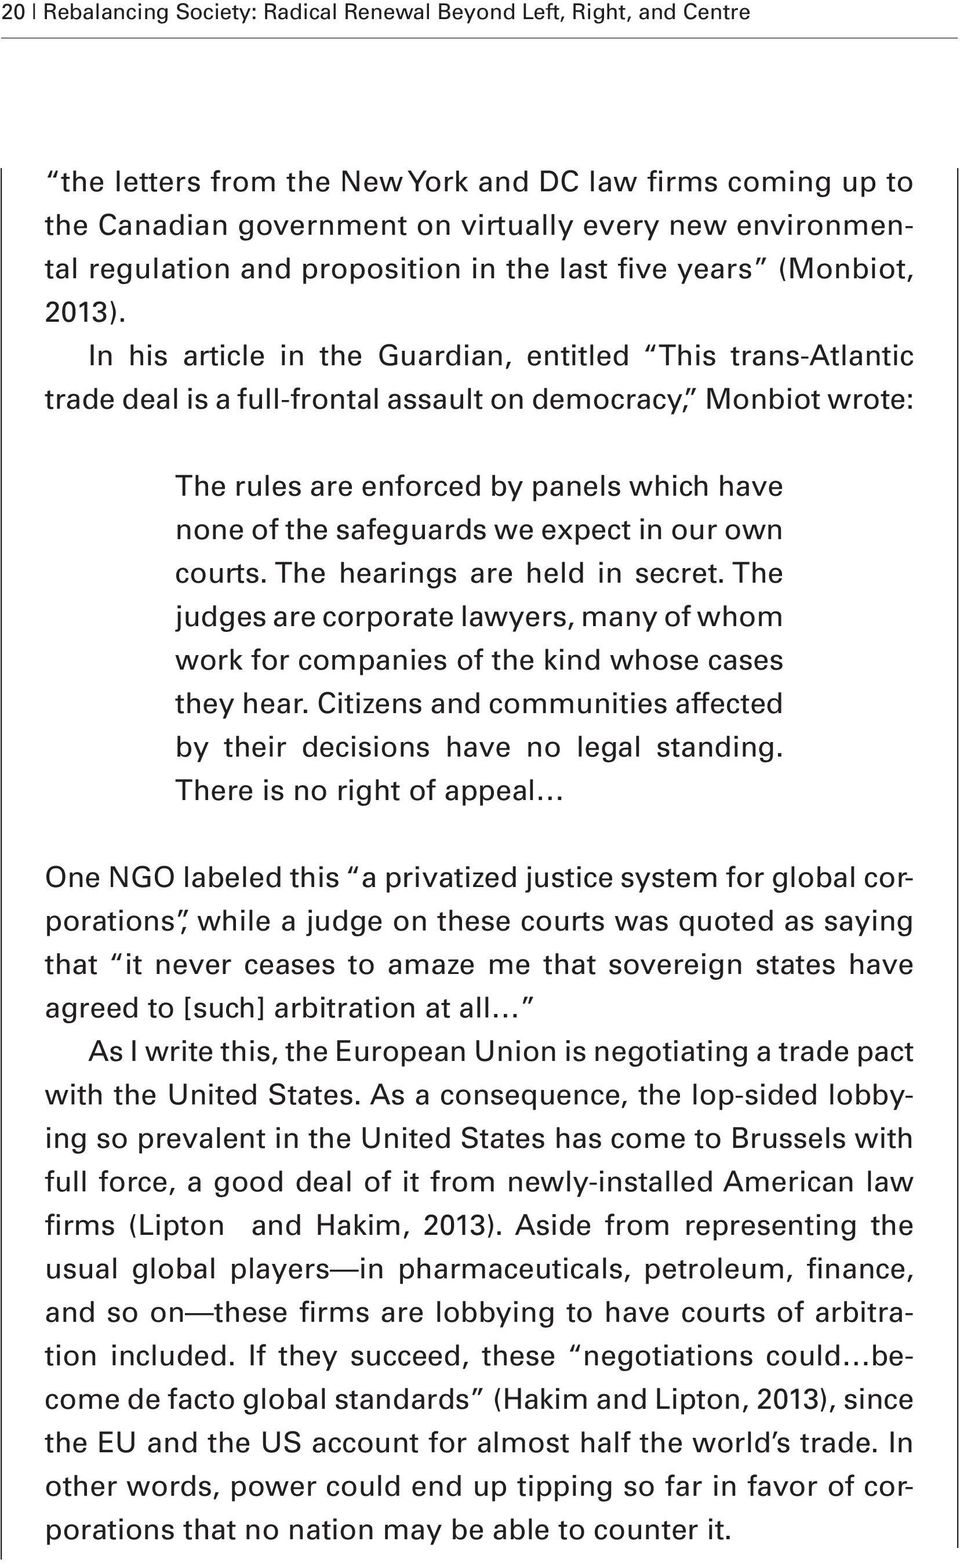 In his article in the Guardian, entitled This trans-atlantic trade deal is a full-frontal assault on democracy, Monbiot wrote: The rules are enforced by panels which have none of the safeguards we